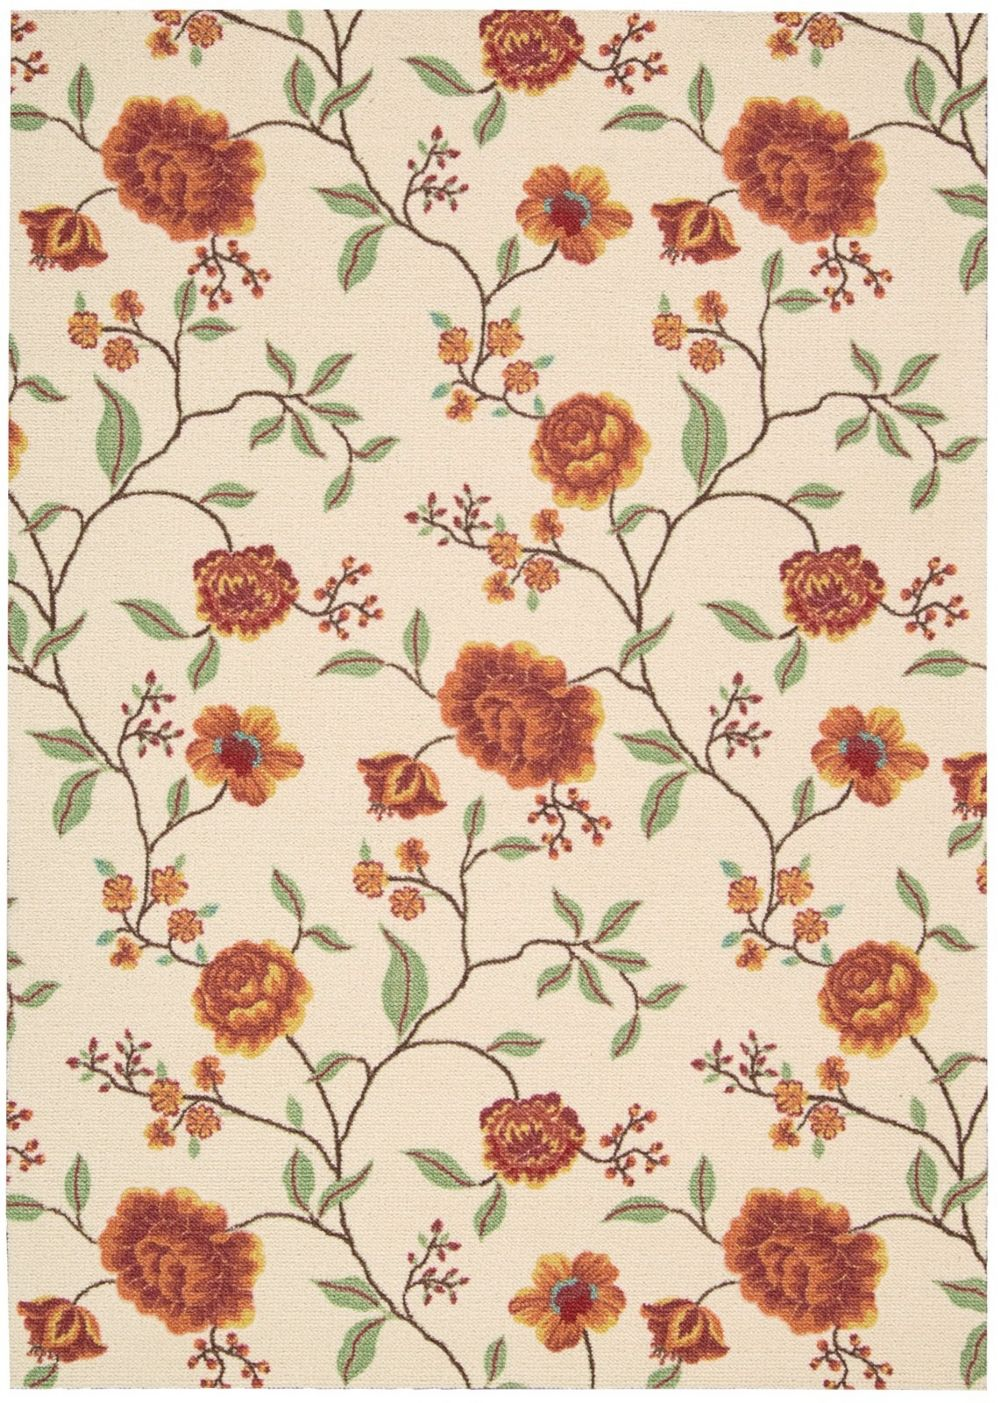 nourison vista country & floral area rug collection